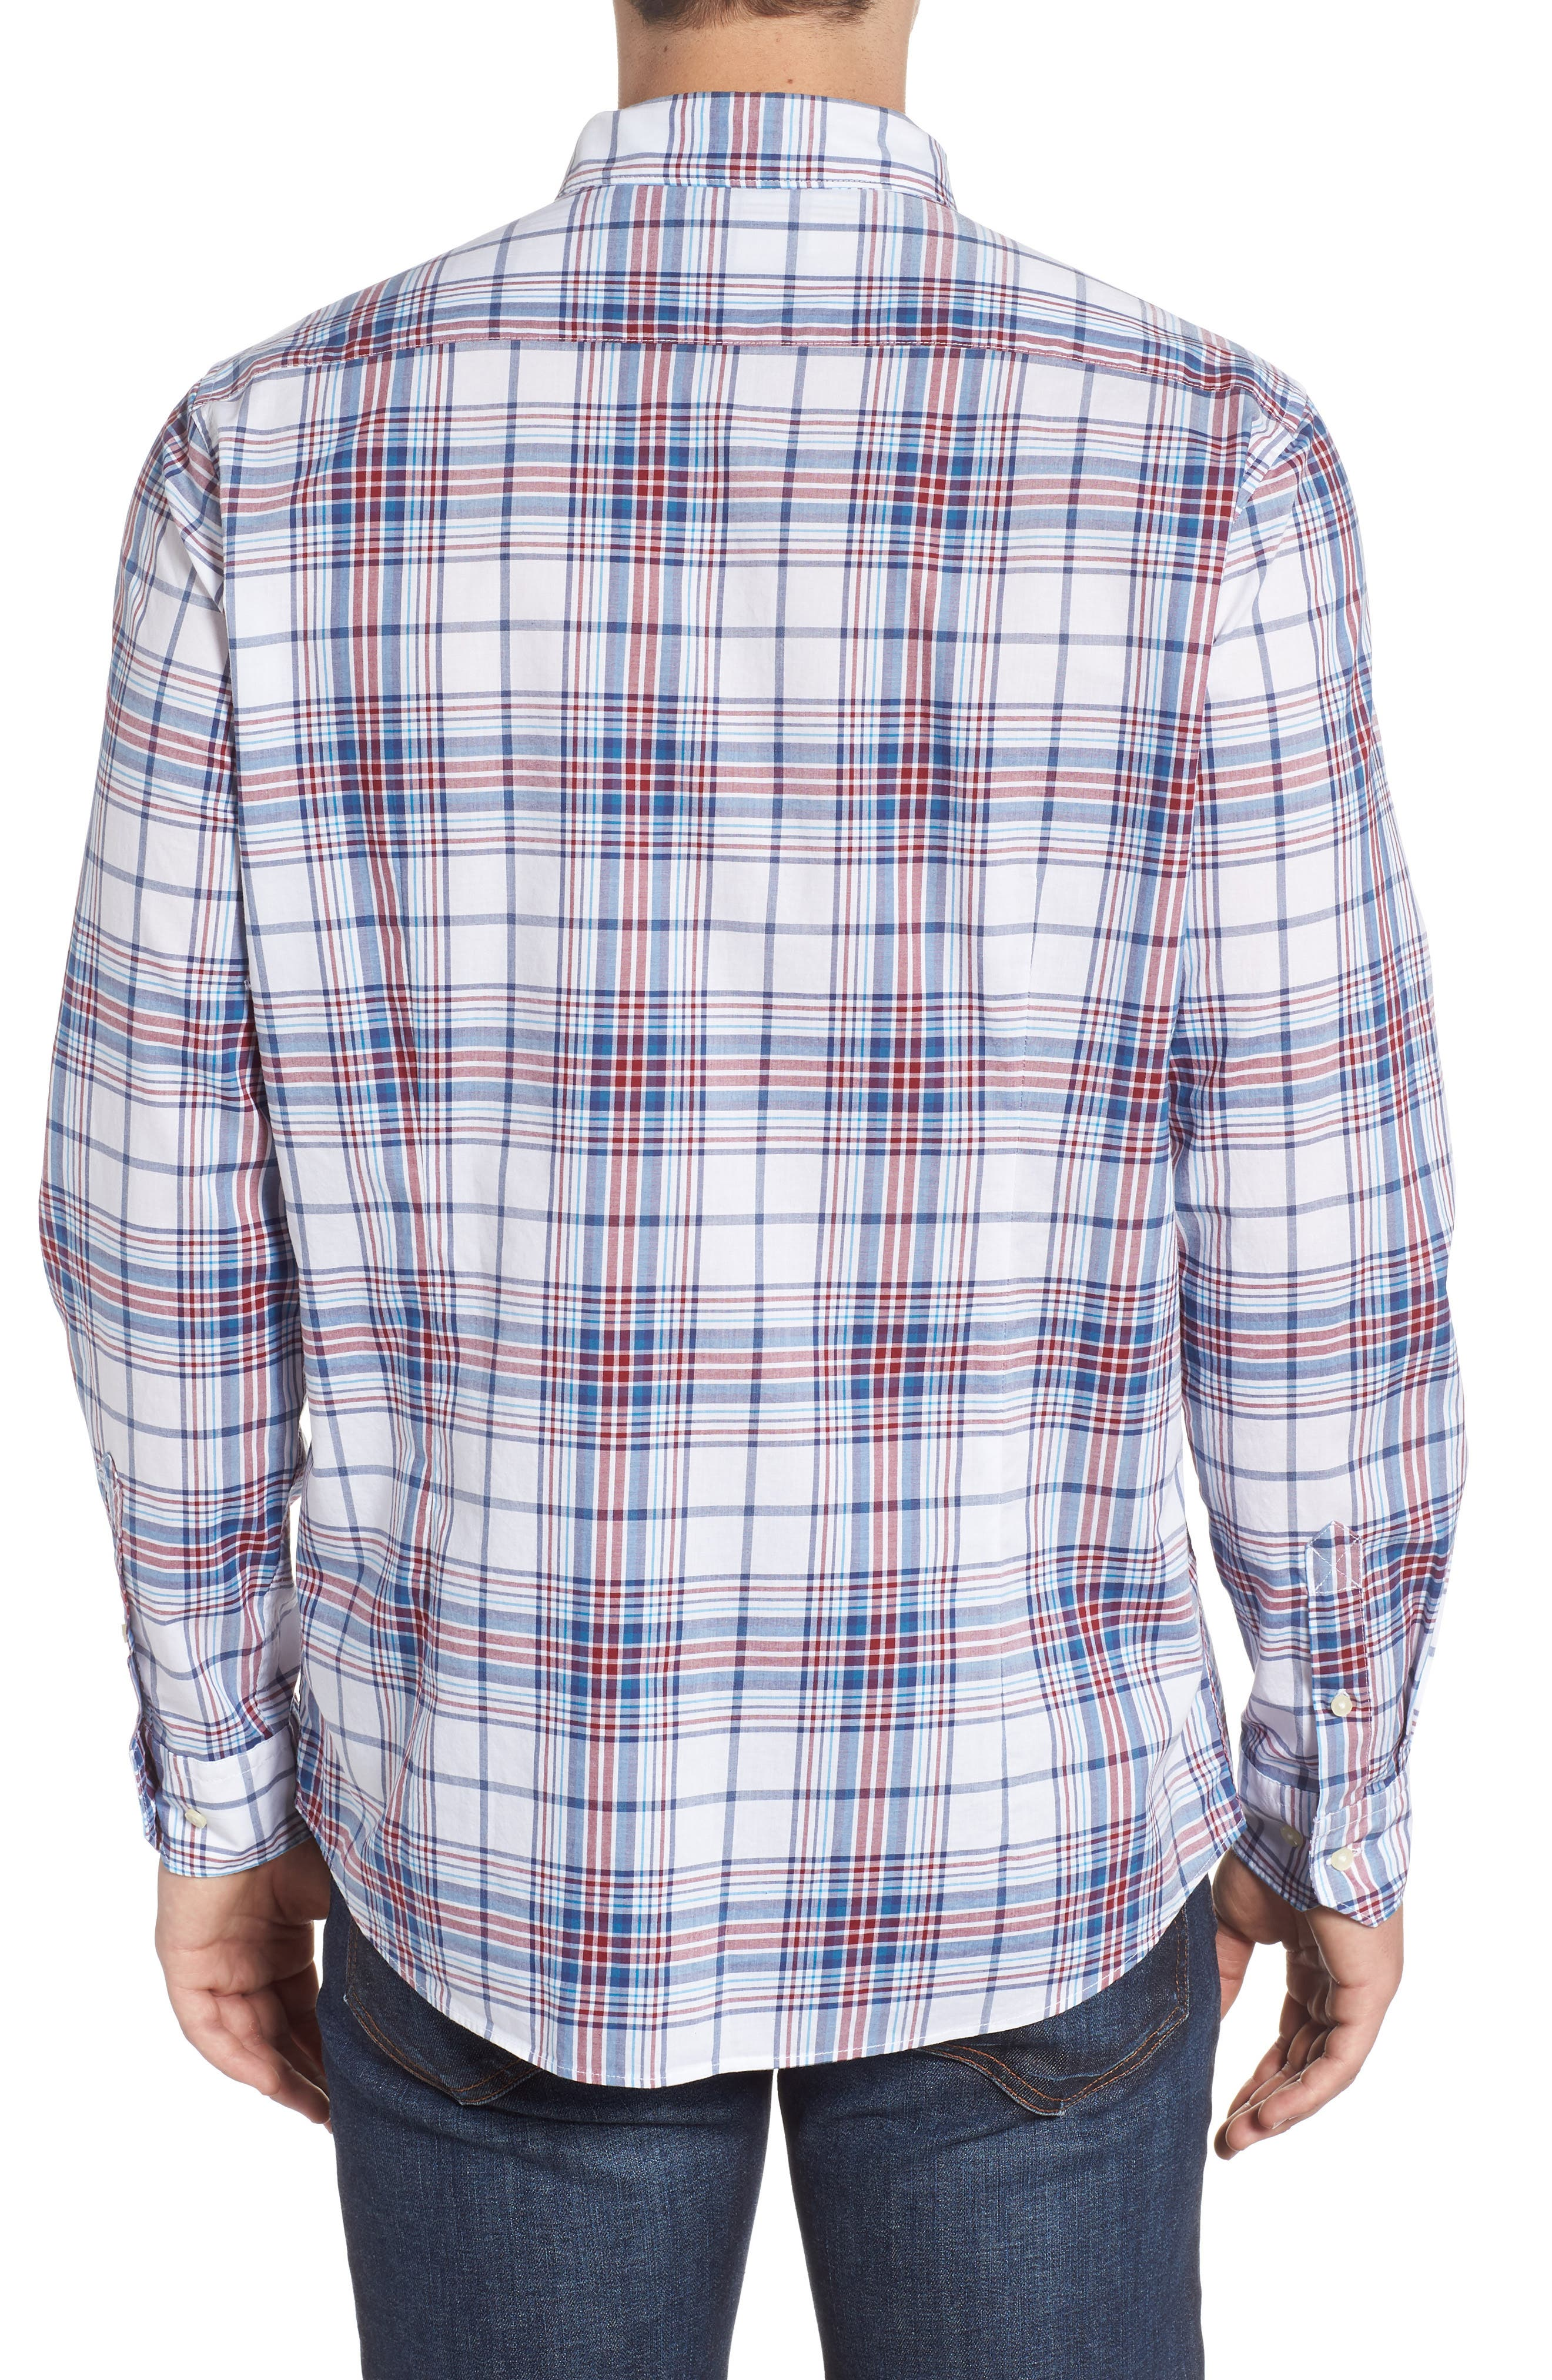 Christopher Tailored Fit Plaid Sport Shirt,                             Alternate thumbnail 3, color,                             Biking Red